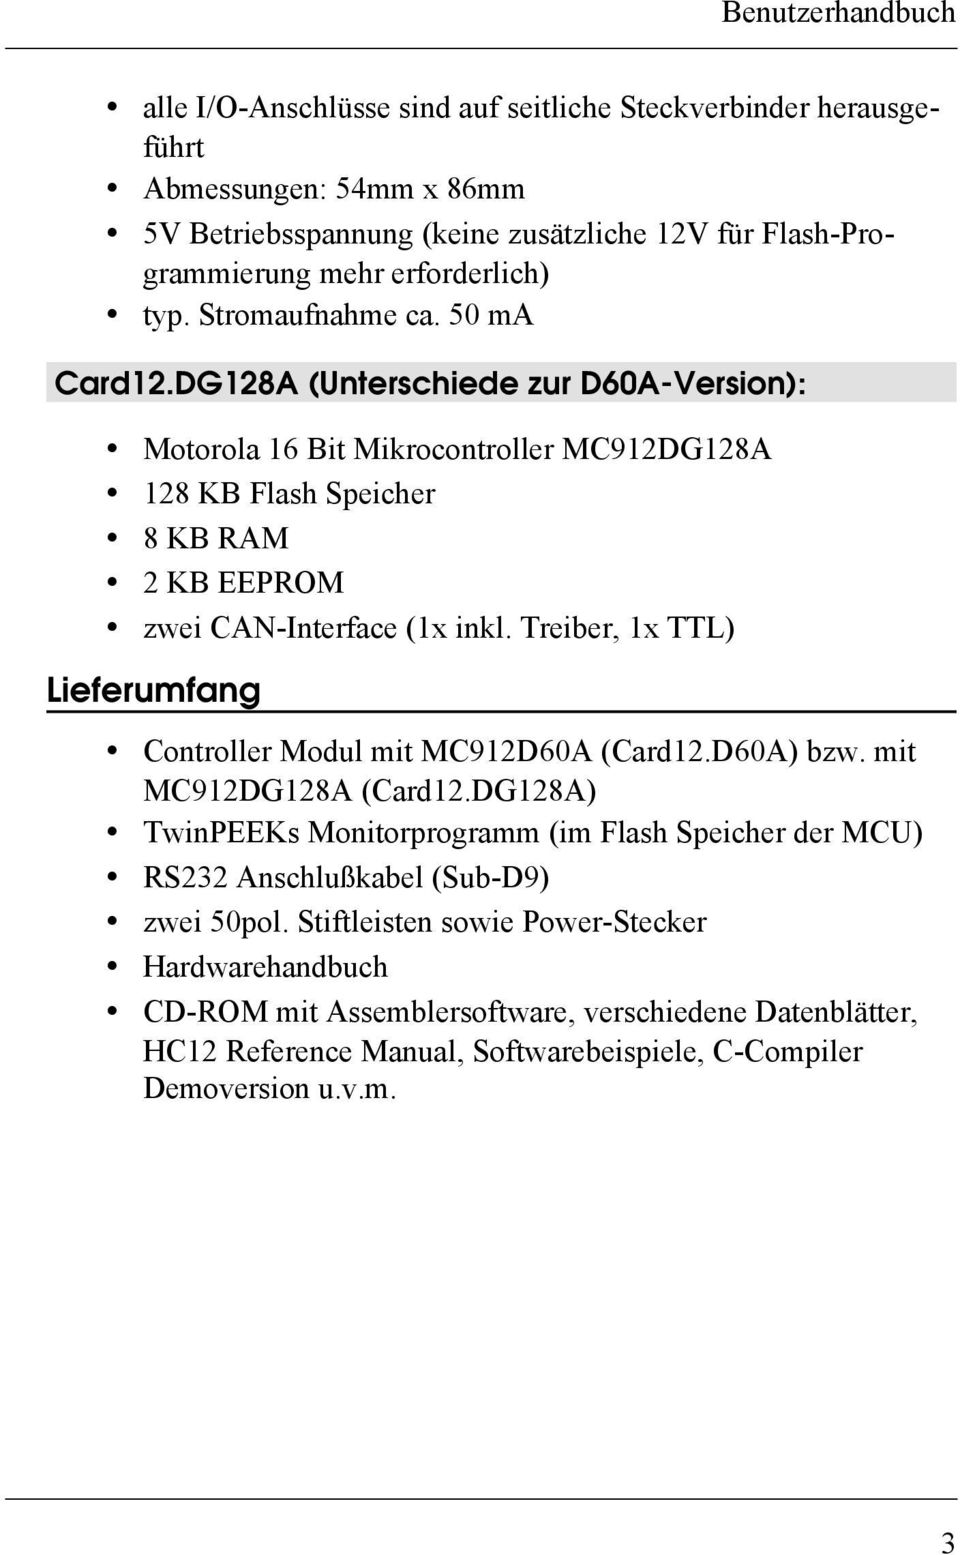 DG128A (Unterschiede zur D60A-Version): Motorola 16 Bit Mikrocontroller MC912DG128A 128 KB Flash Speicher 8 KB RAM 2 KB EEPROM zei CAN-Interface (1x inkl.